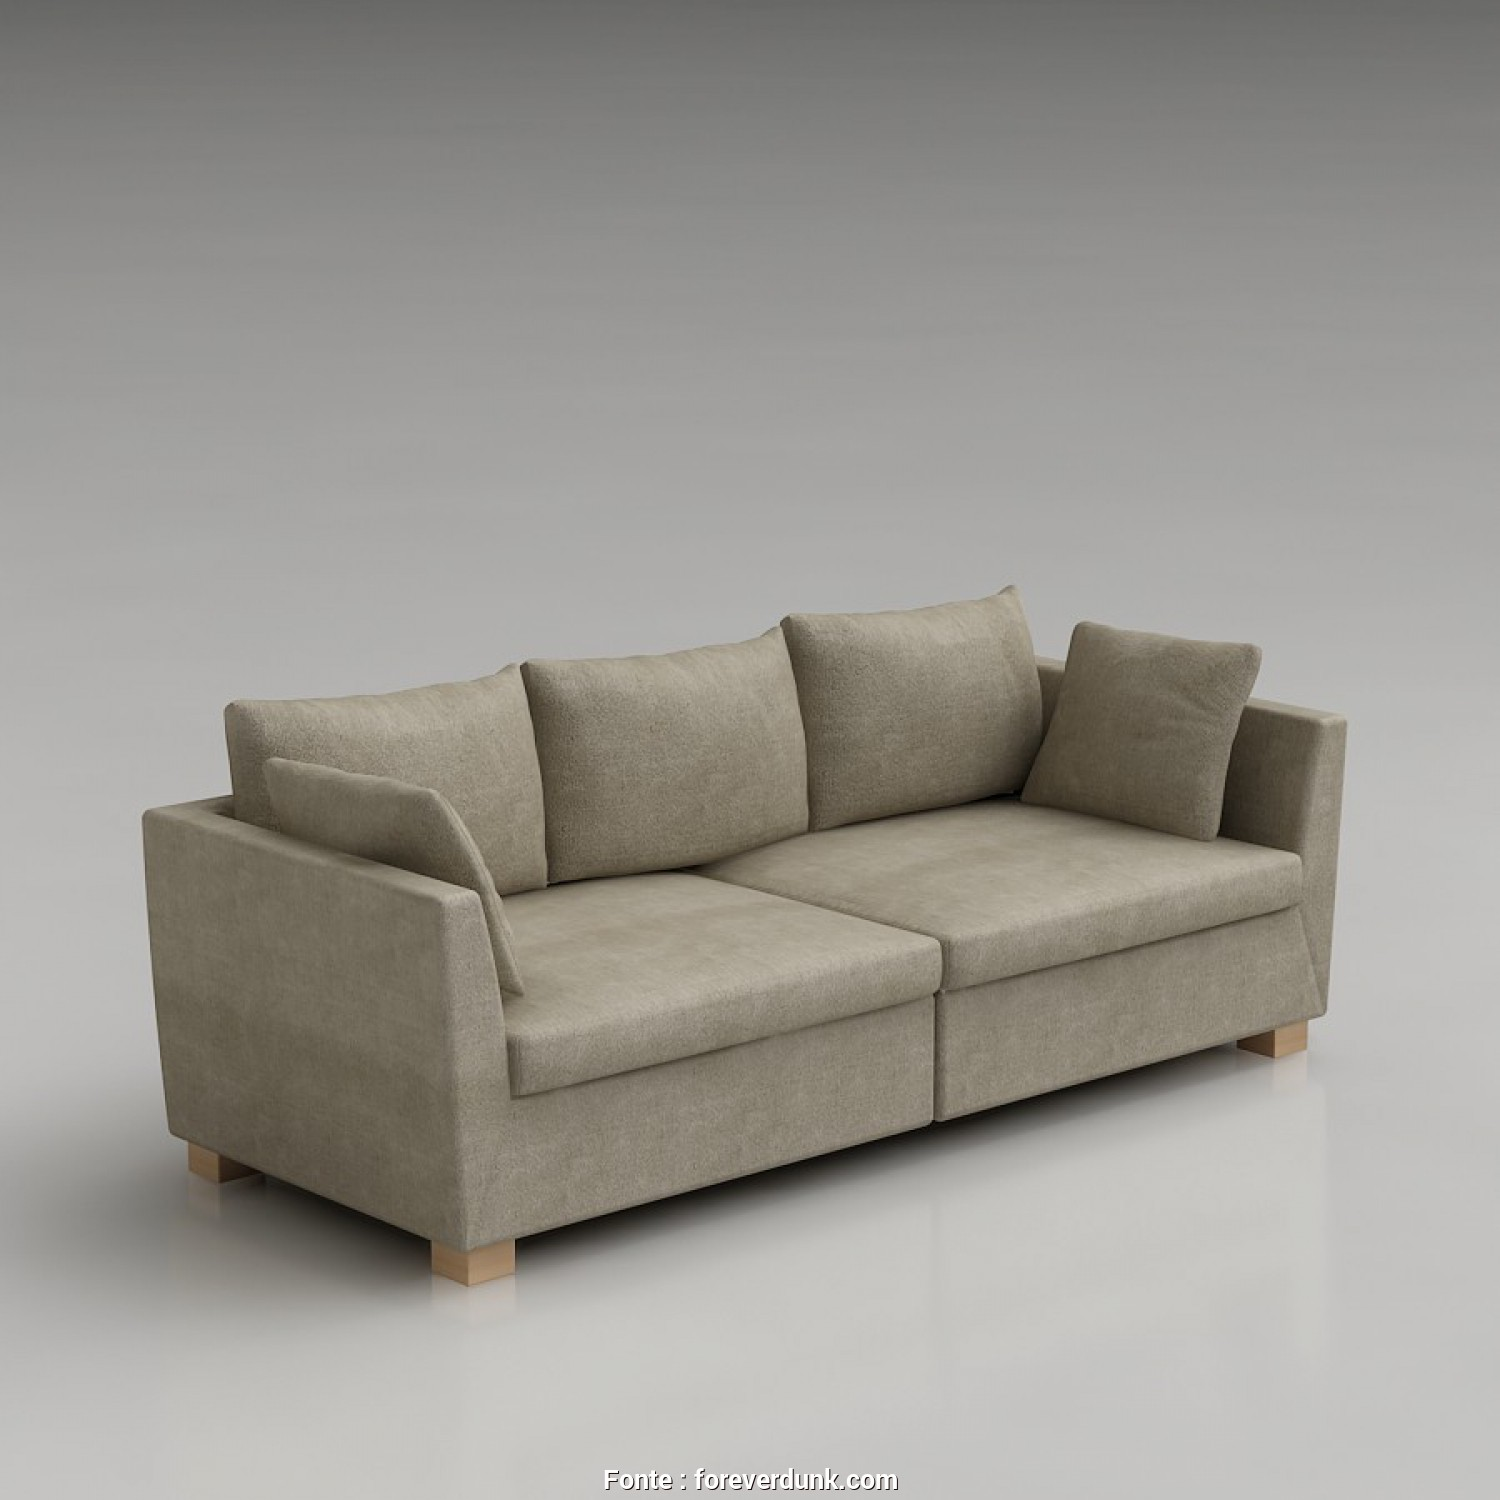 Ideale 5 Ikea Backabro Sofa Review